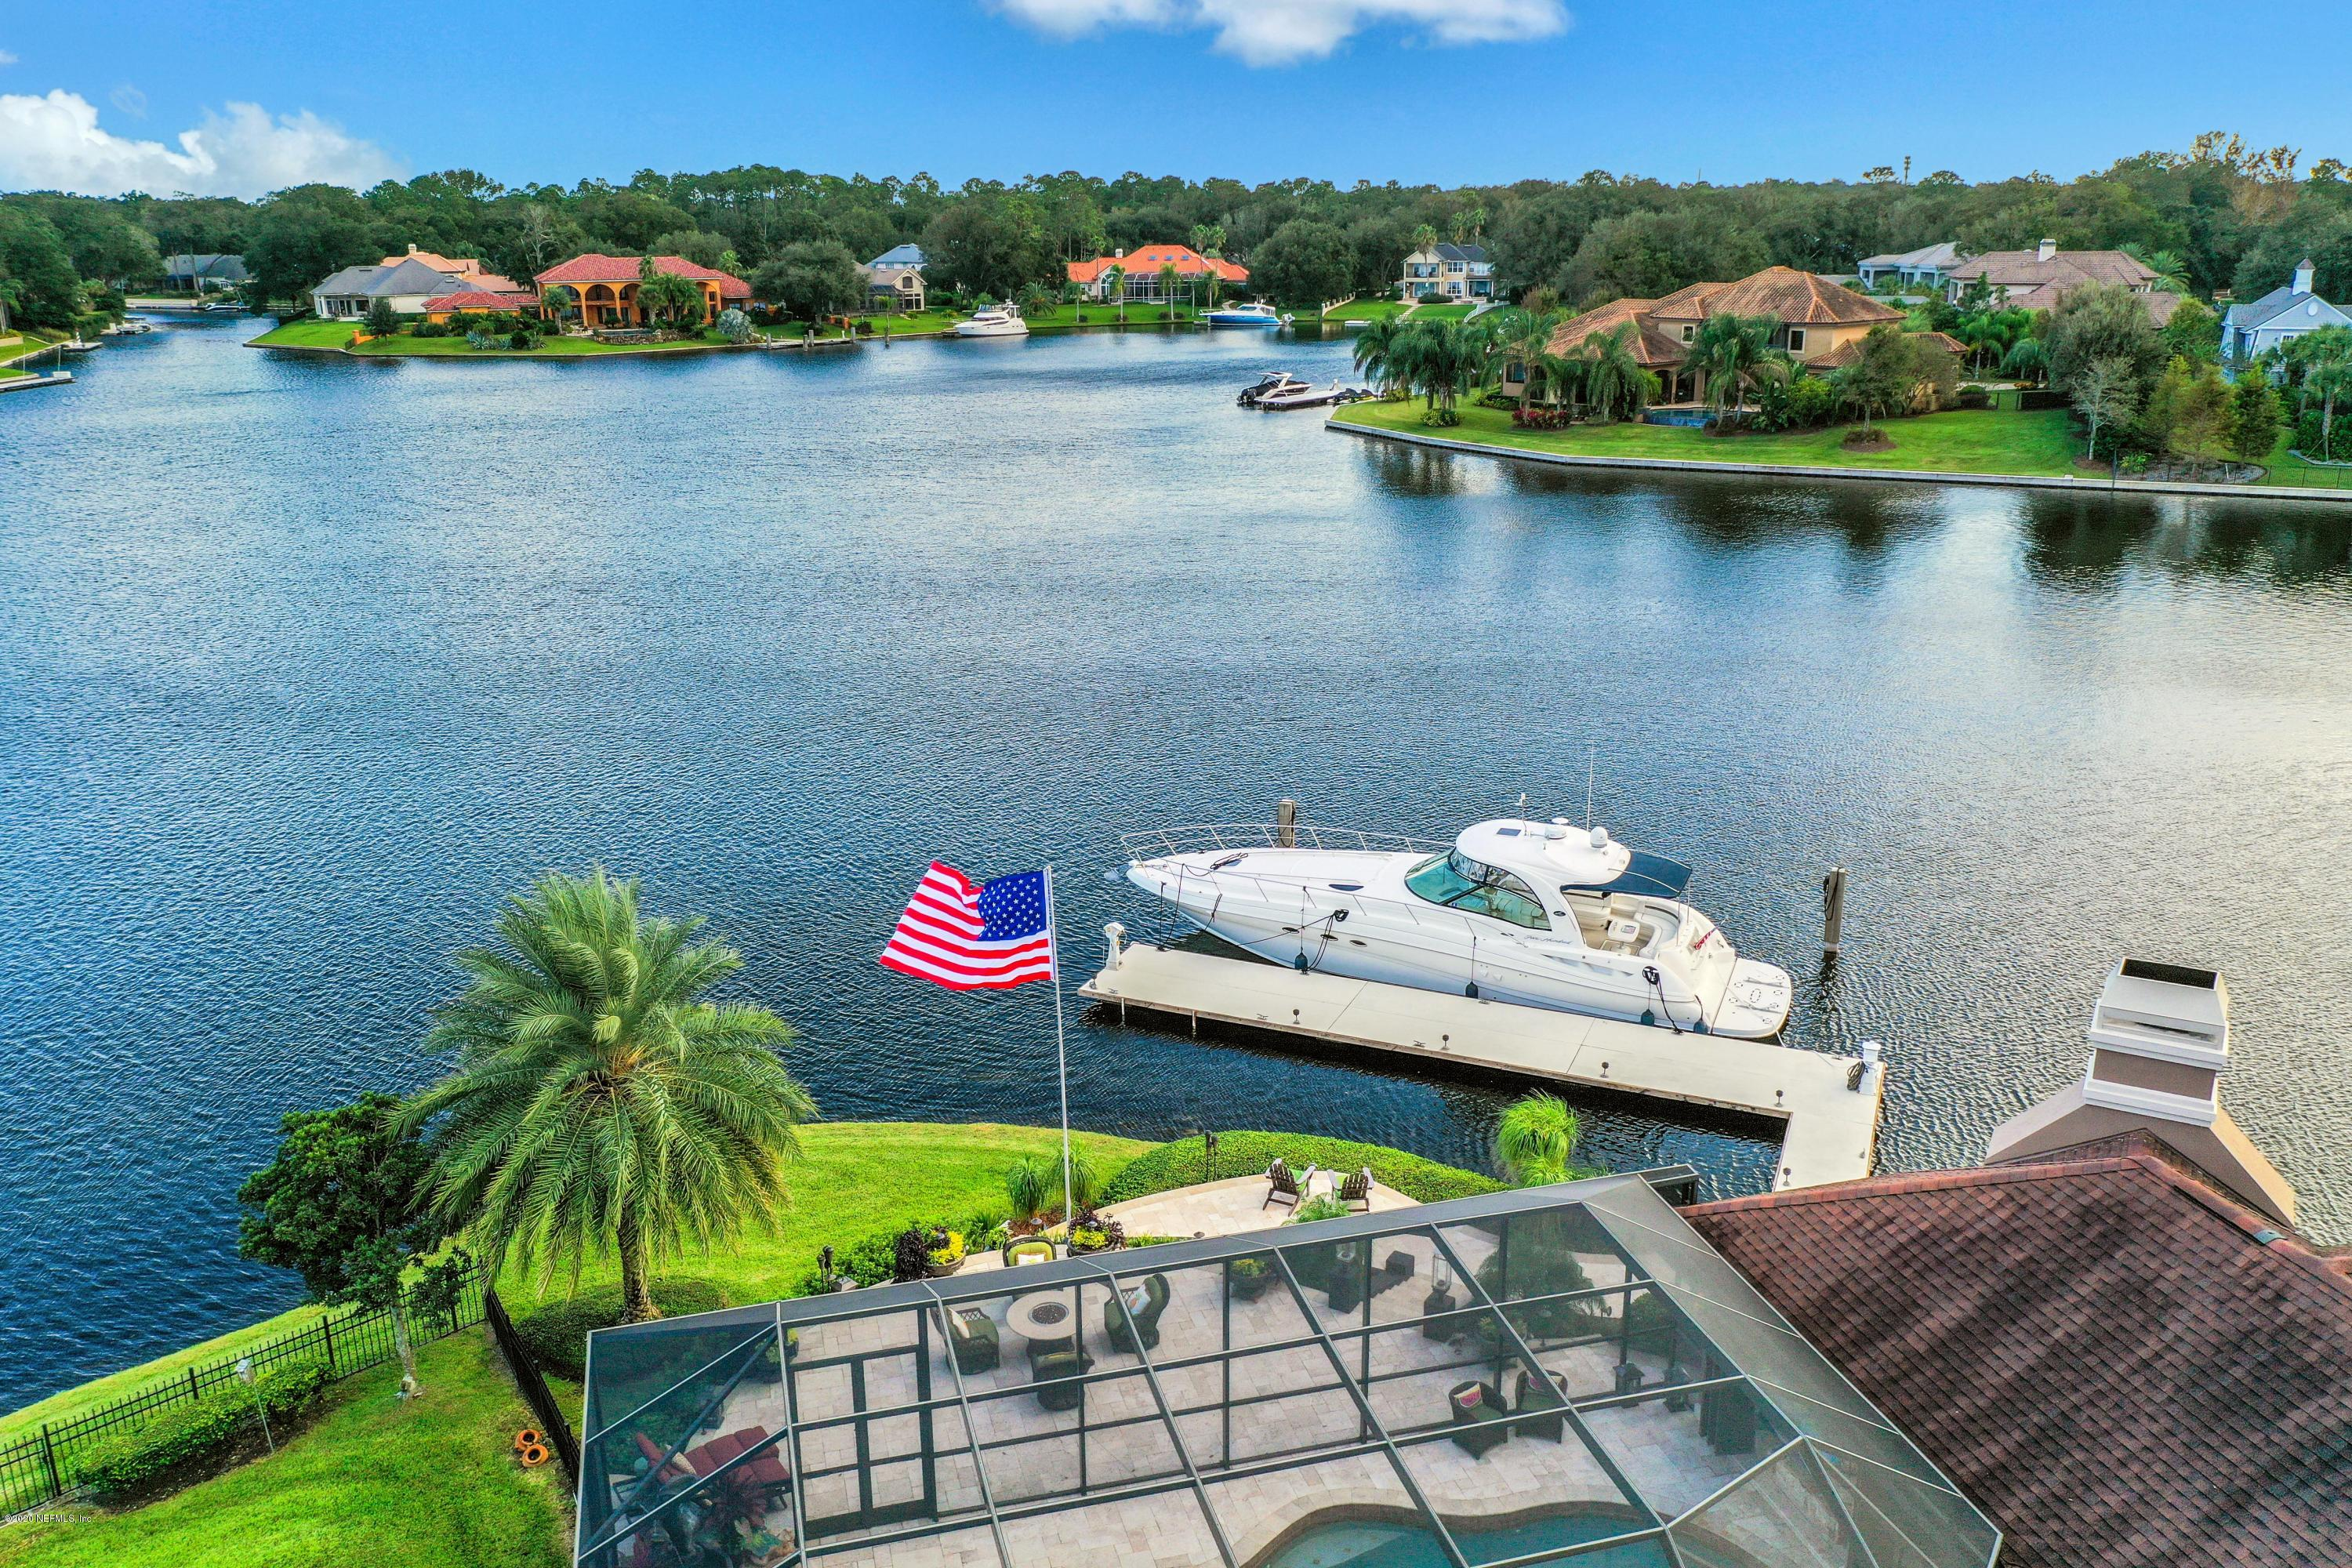 13612 EMERALD COVE, JACKSONVILLE, FLORIDA 32225, 5 Bedrooms Bedrooms, ,4 BathroomsBathrooms,Residential,For sale,EMERALD COVE,1098041